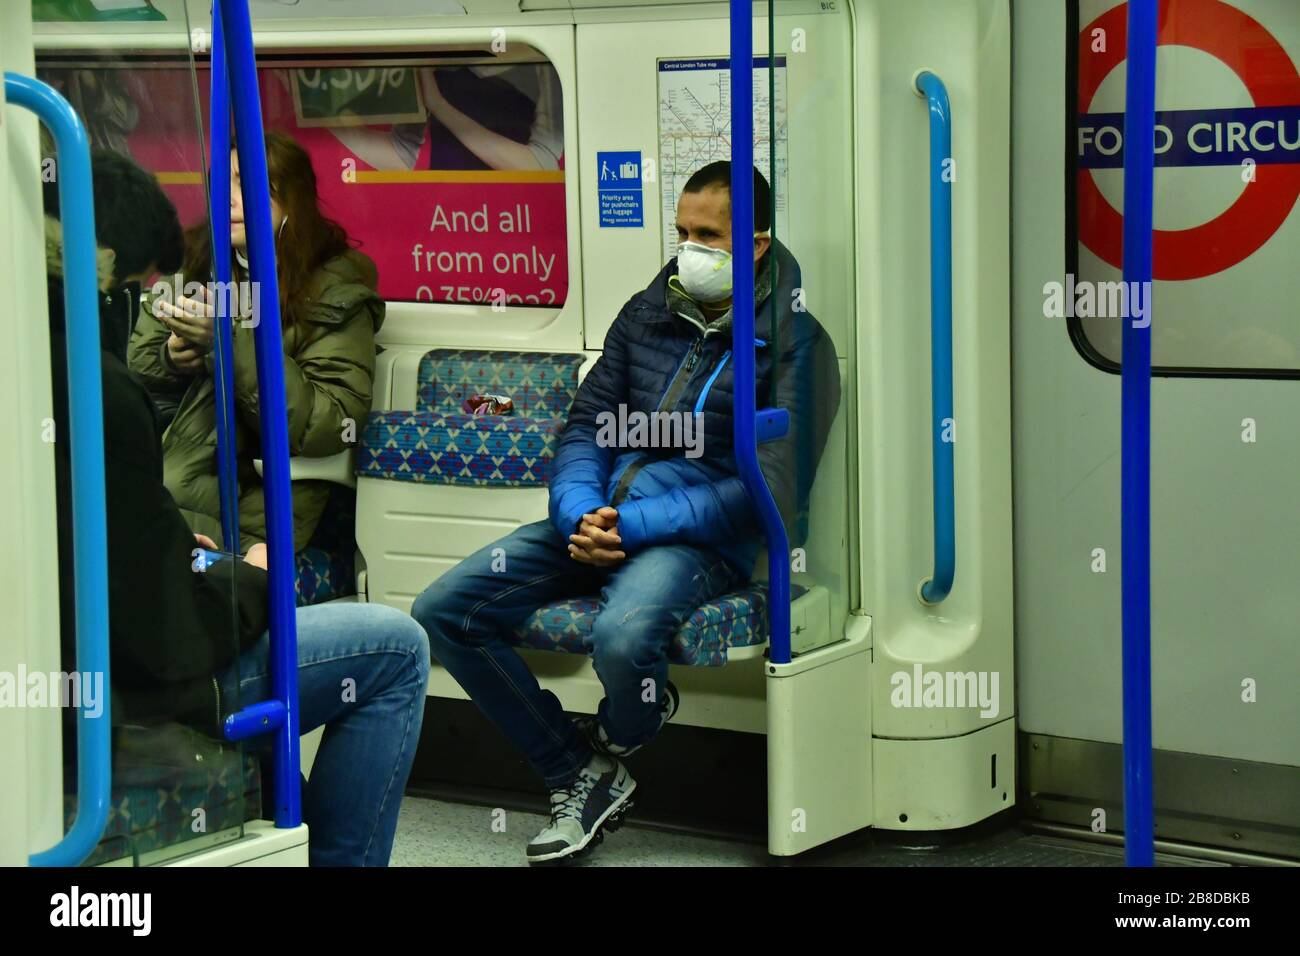 London, UK. 21st March 2020. A beggar without mask begging at Oxford Circus underground people sitting inside the tube wearing mask on 21 March 2020, UK. Credit: Picture Capital/Alamy Live News Stock Photo